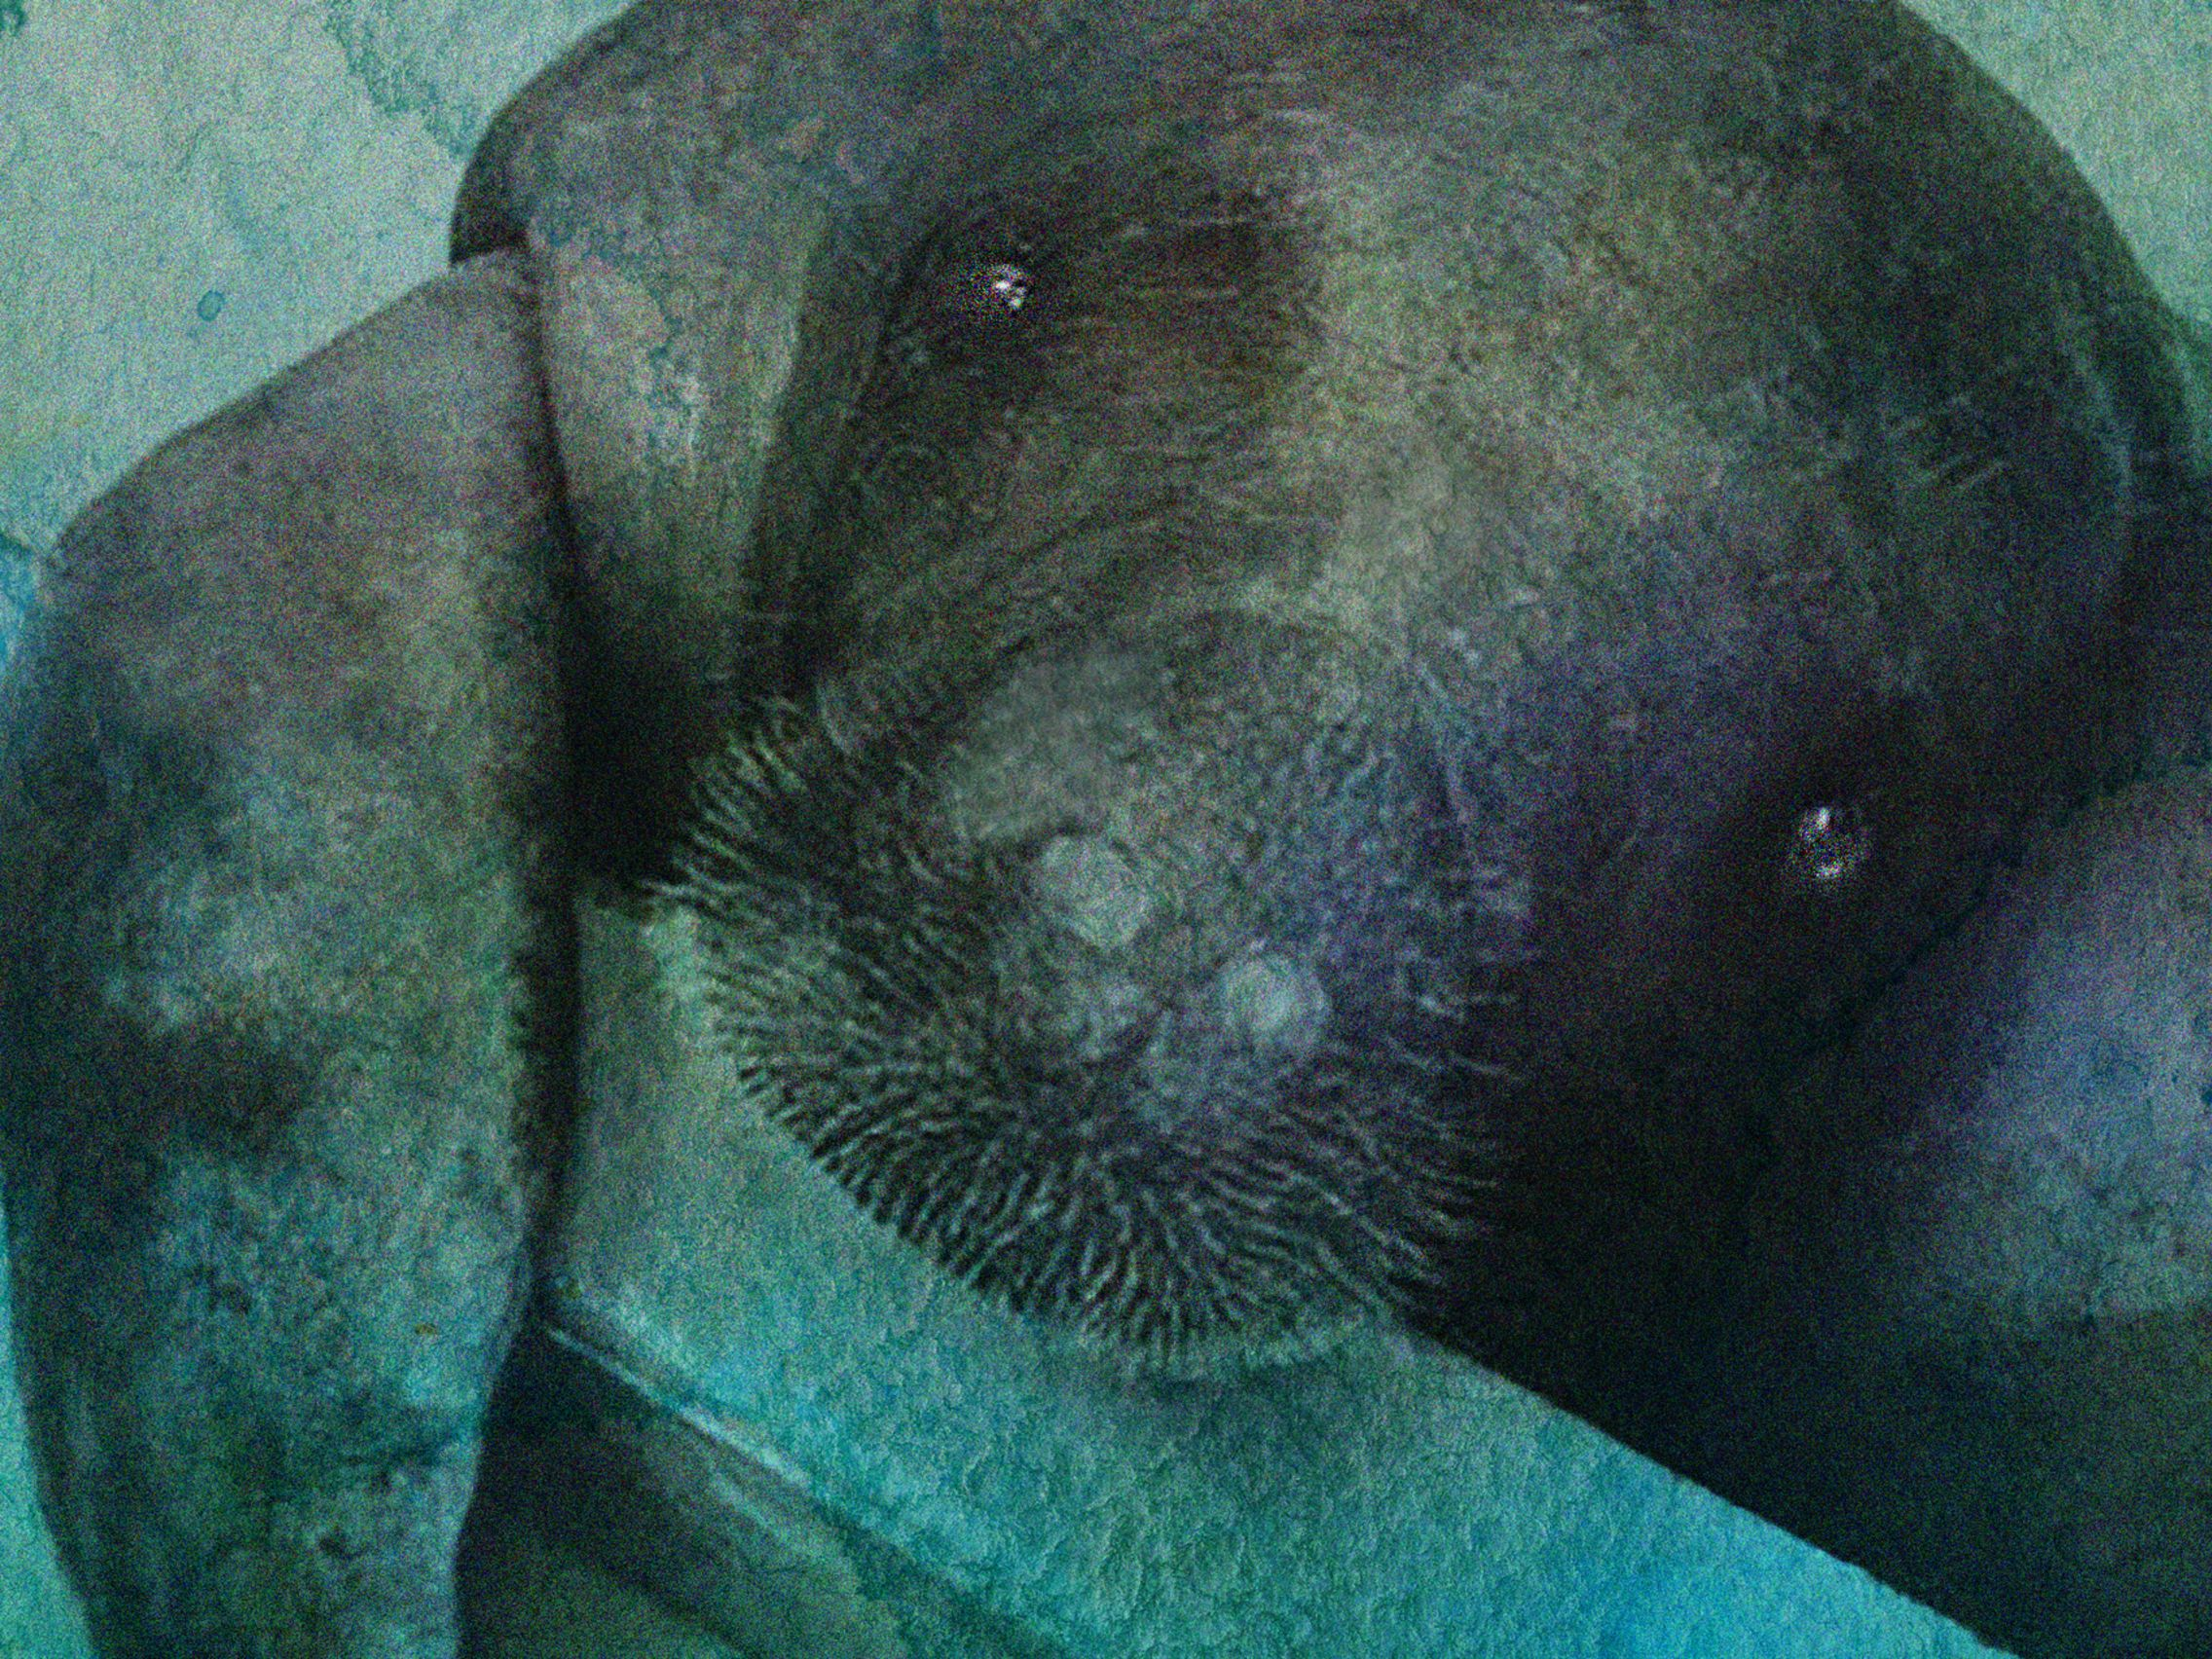 66 year old manatee snooty 9 gcoi6c